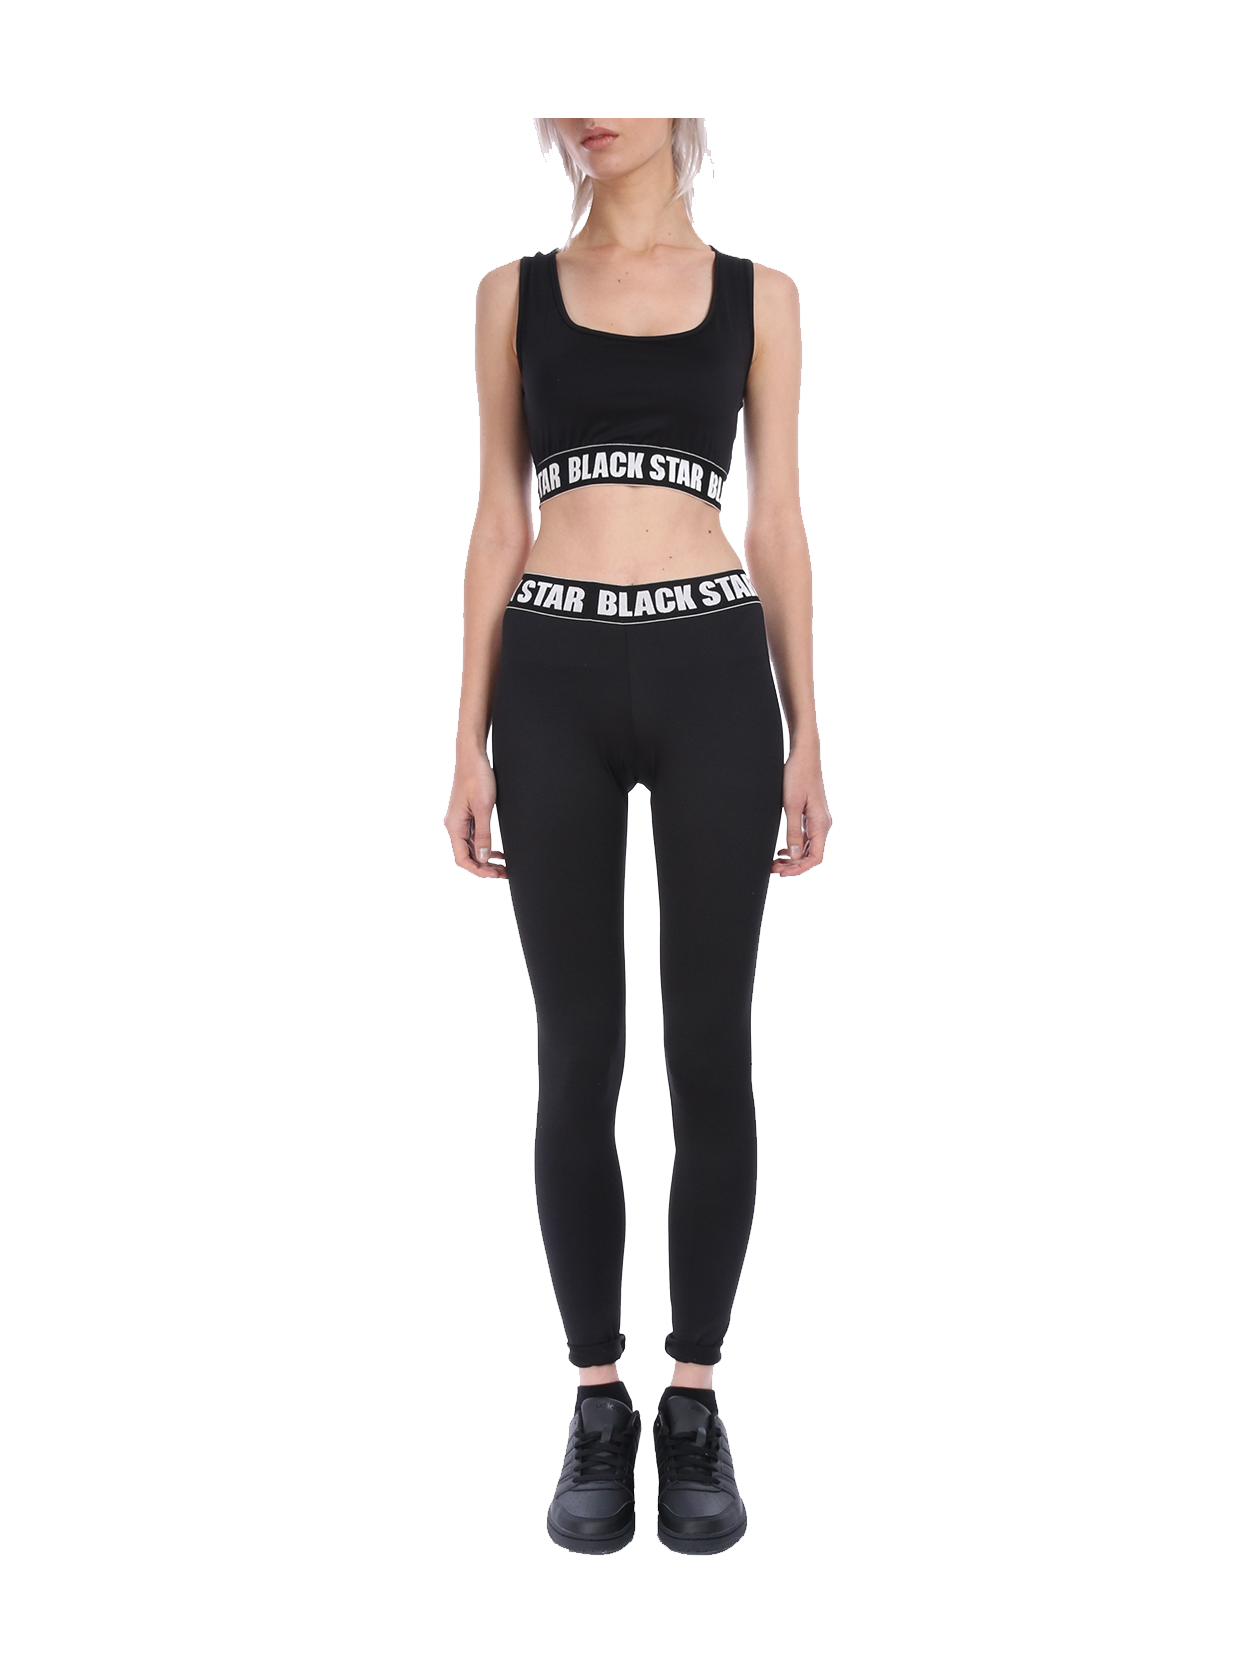 Womens tank top and leggings Black Star Sport от BlackStarWear INT